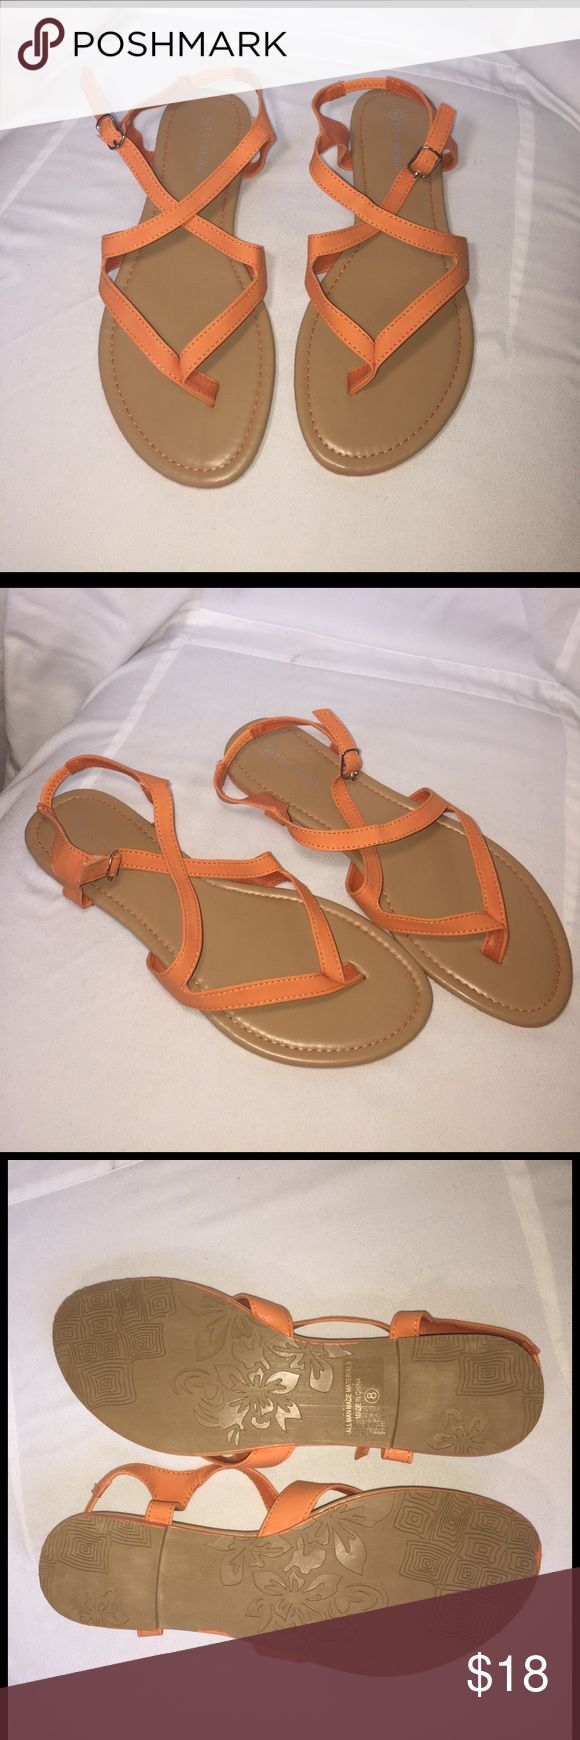 ✨Orange Strappy Sandals ✨ Brand New in original box. Orange Strappy thong Sandals. Top Moda Shoes Sandals